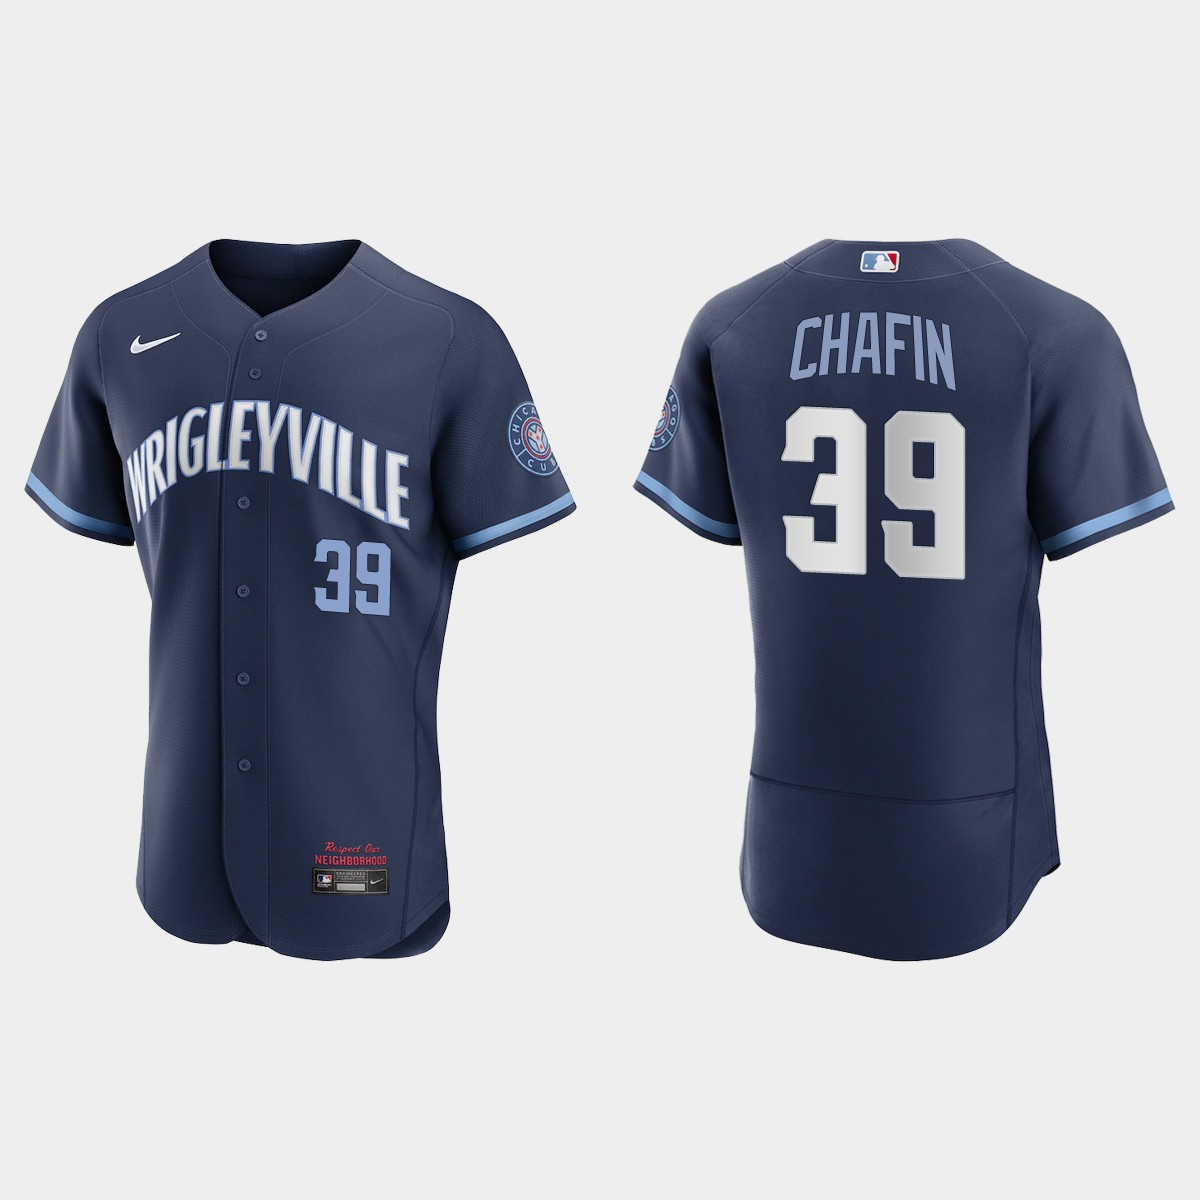 Men's Chicago Cubs #39 Andrew Chafin Men's Nike 2021 City Connect Authentic Navy MLB Jersey